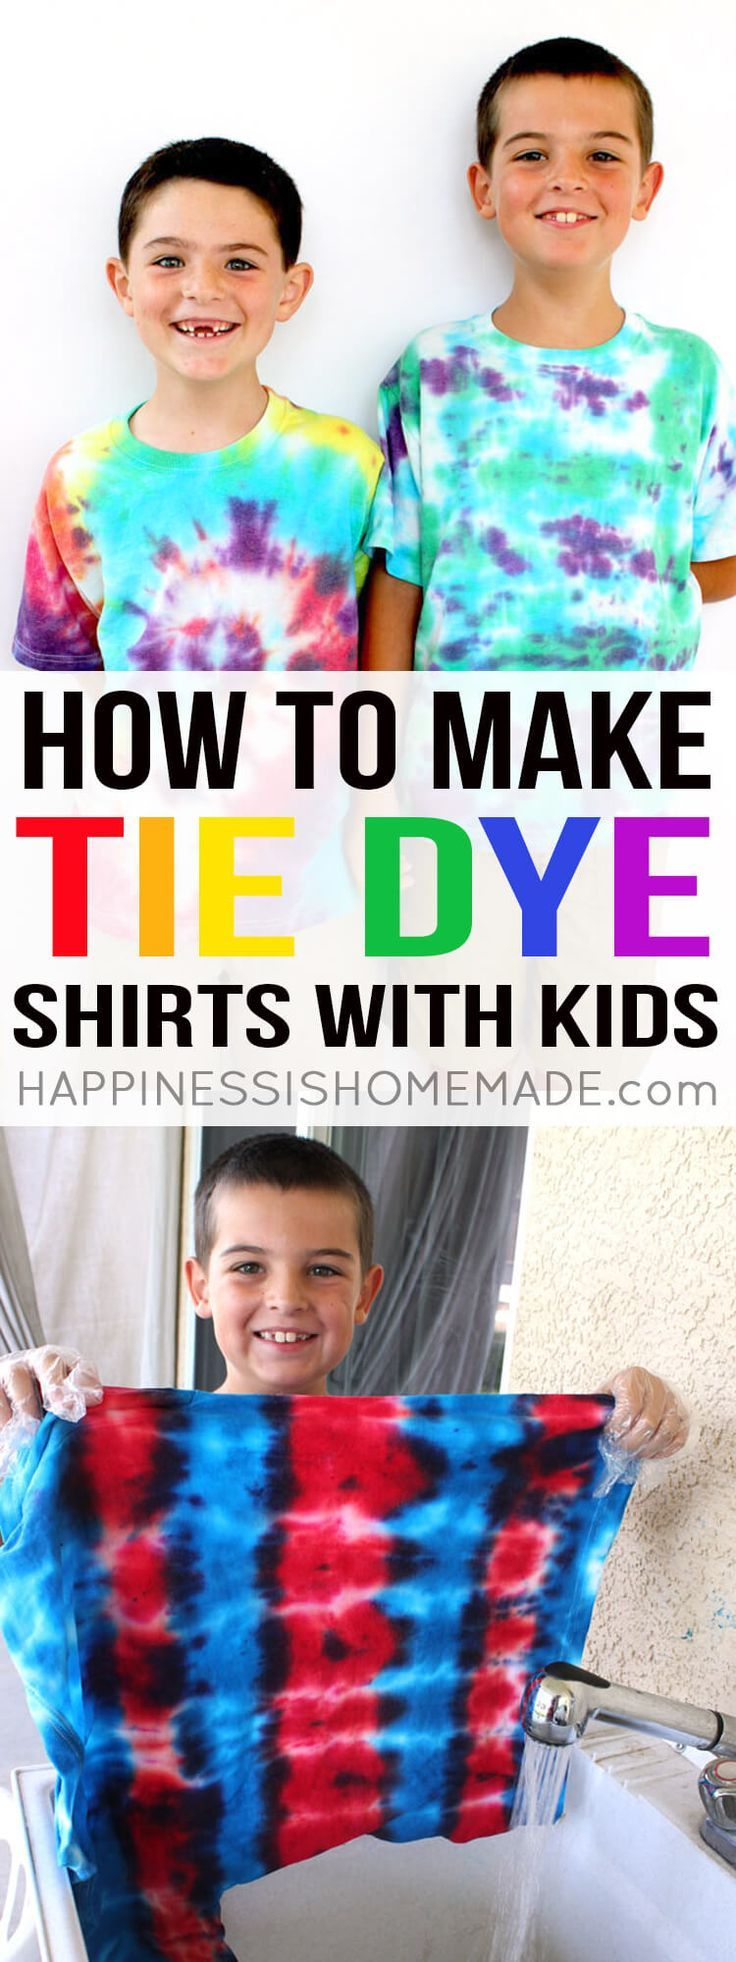 25 best ideas about tie dye shirt patterns on pinterest for How to make tie dye shirts at home